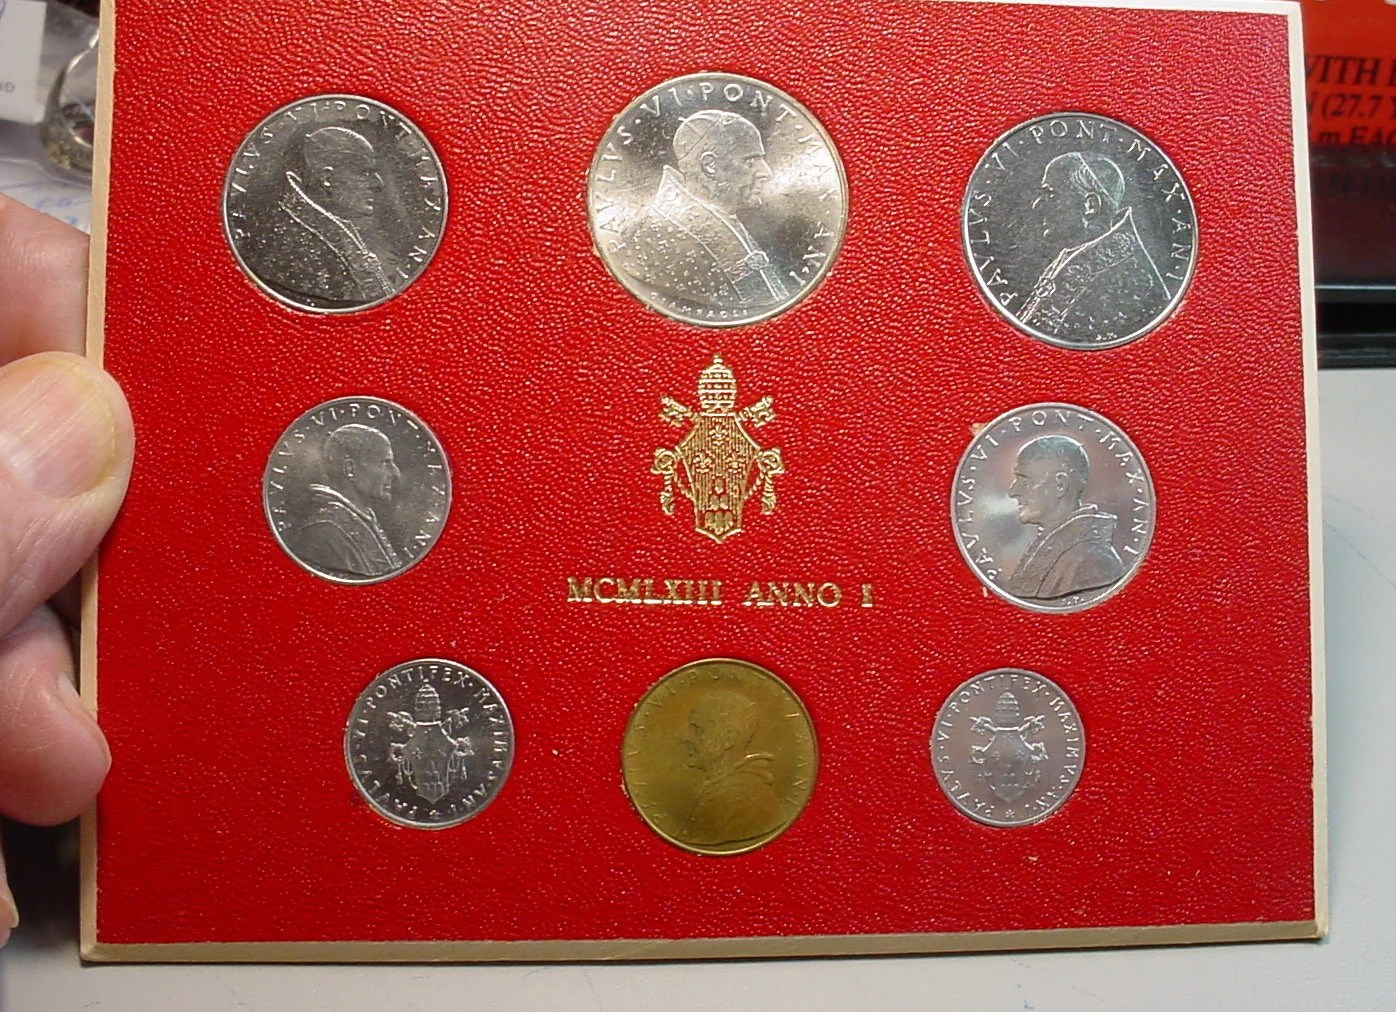 Mint Set Vatican City Mint Set 1963 Pope Paul Iv 8 Coin Set Low Mintage Brilliant Uncirculated Large Coin Is Silver Free S H To U S Et7809